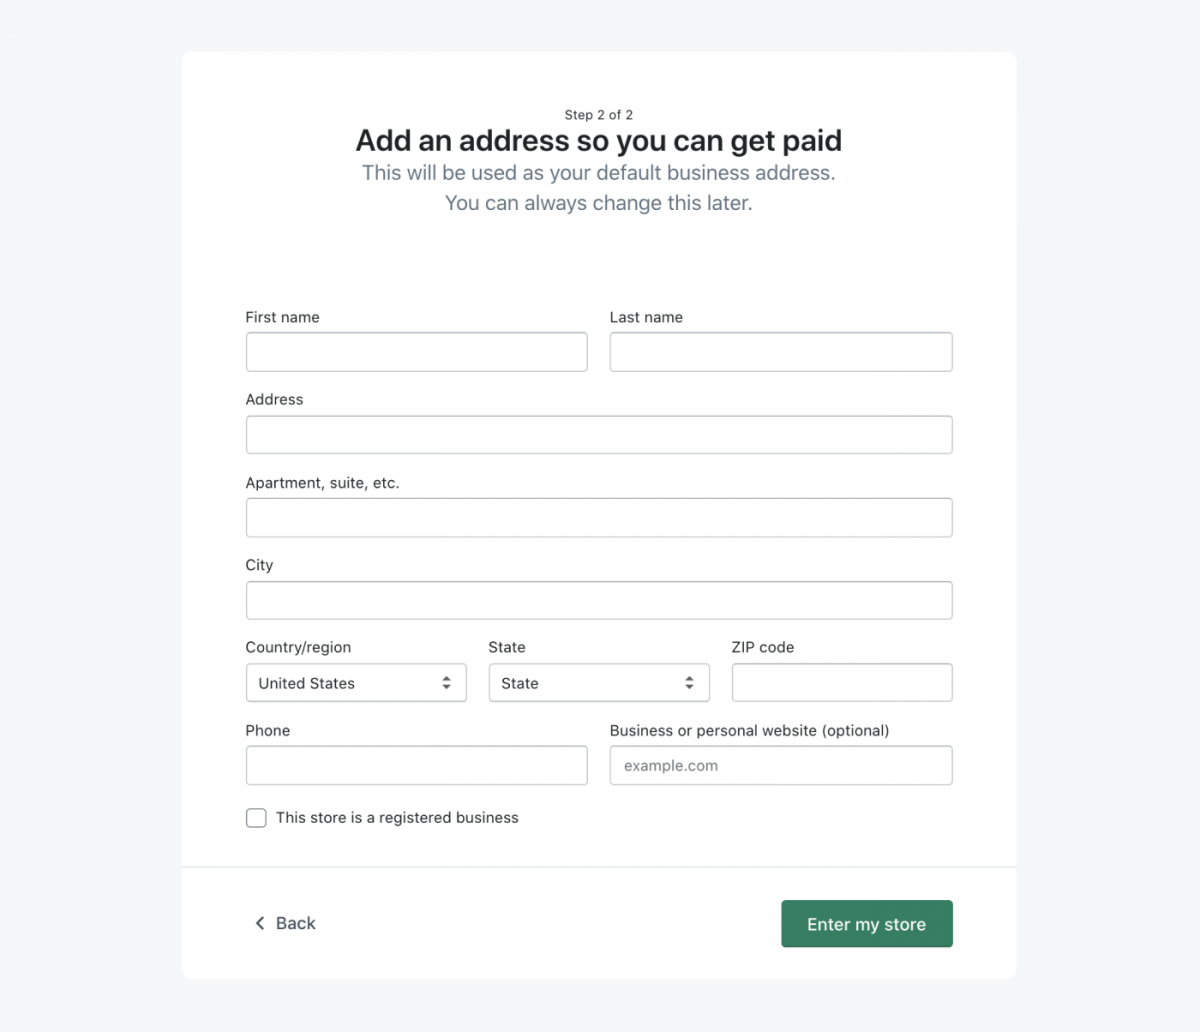 Step 2 of setting up a Shopify store